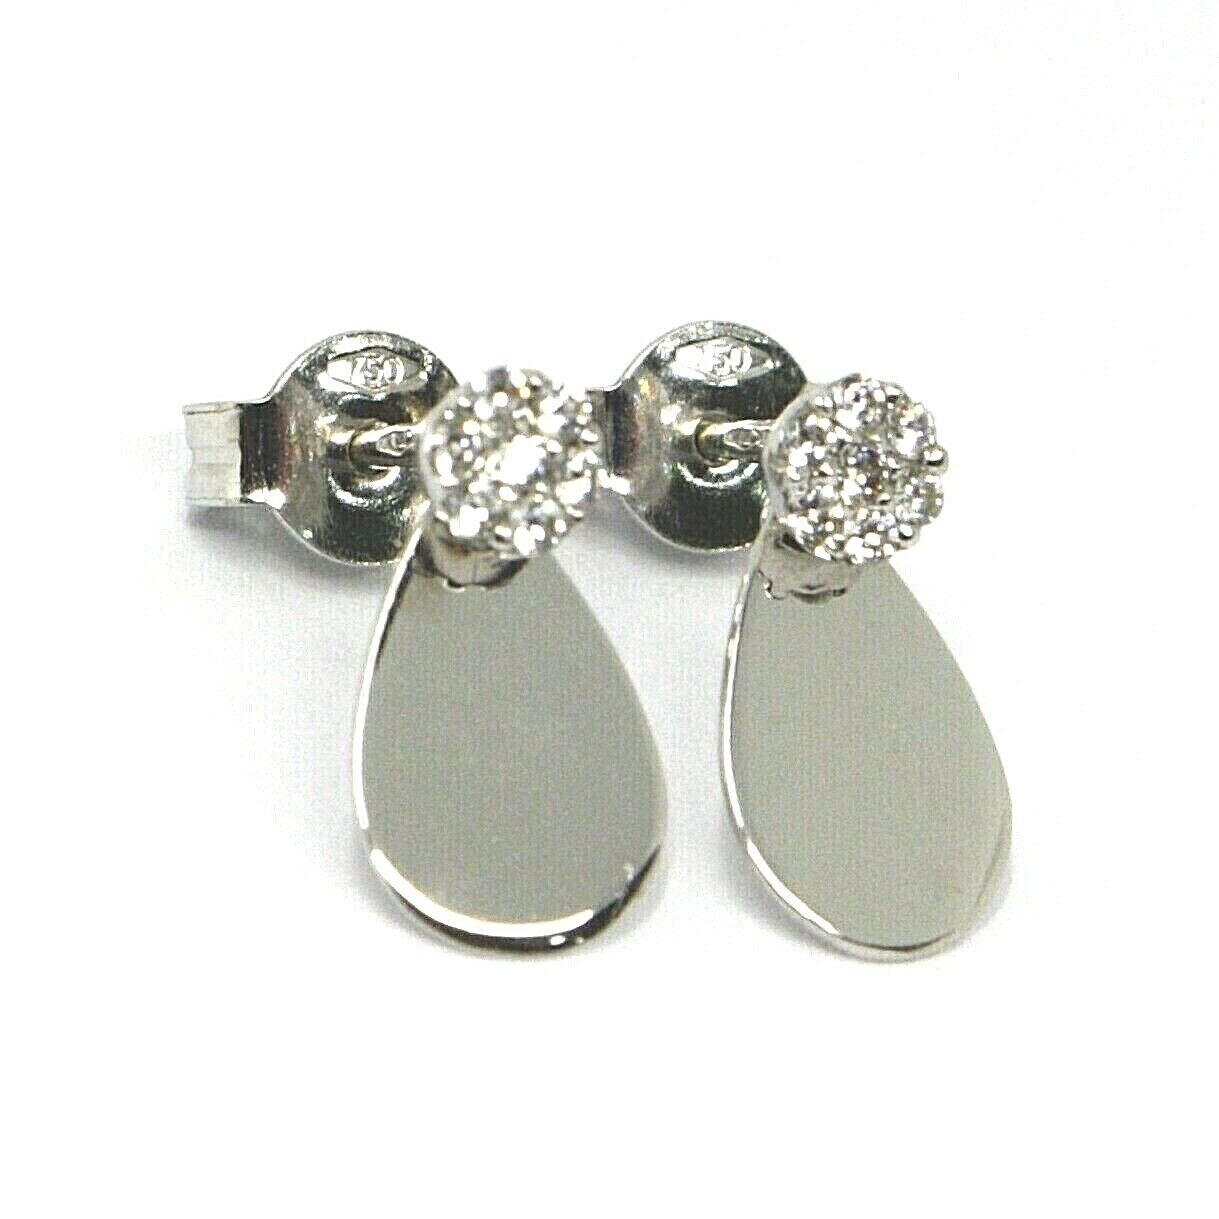 SOLID 18K WHITE GOLD PENDANT EARRINGS DROP WITH FLOWER CUBIC ZIRCONIA ON TOP